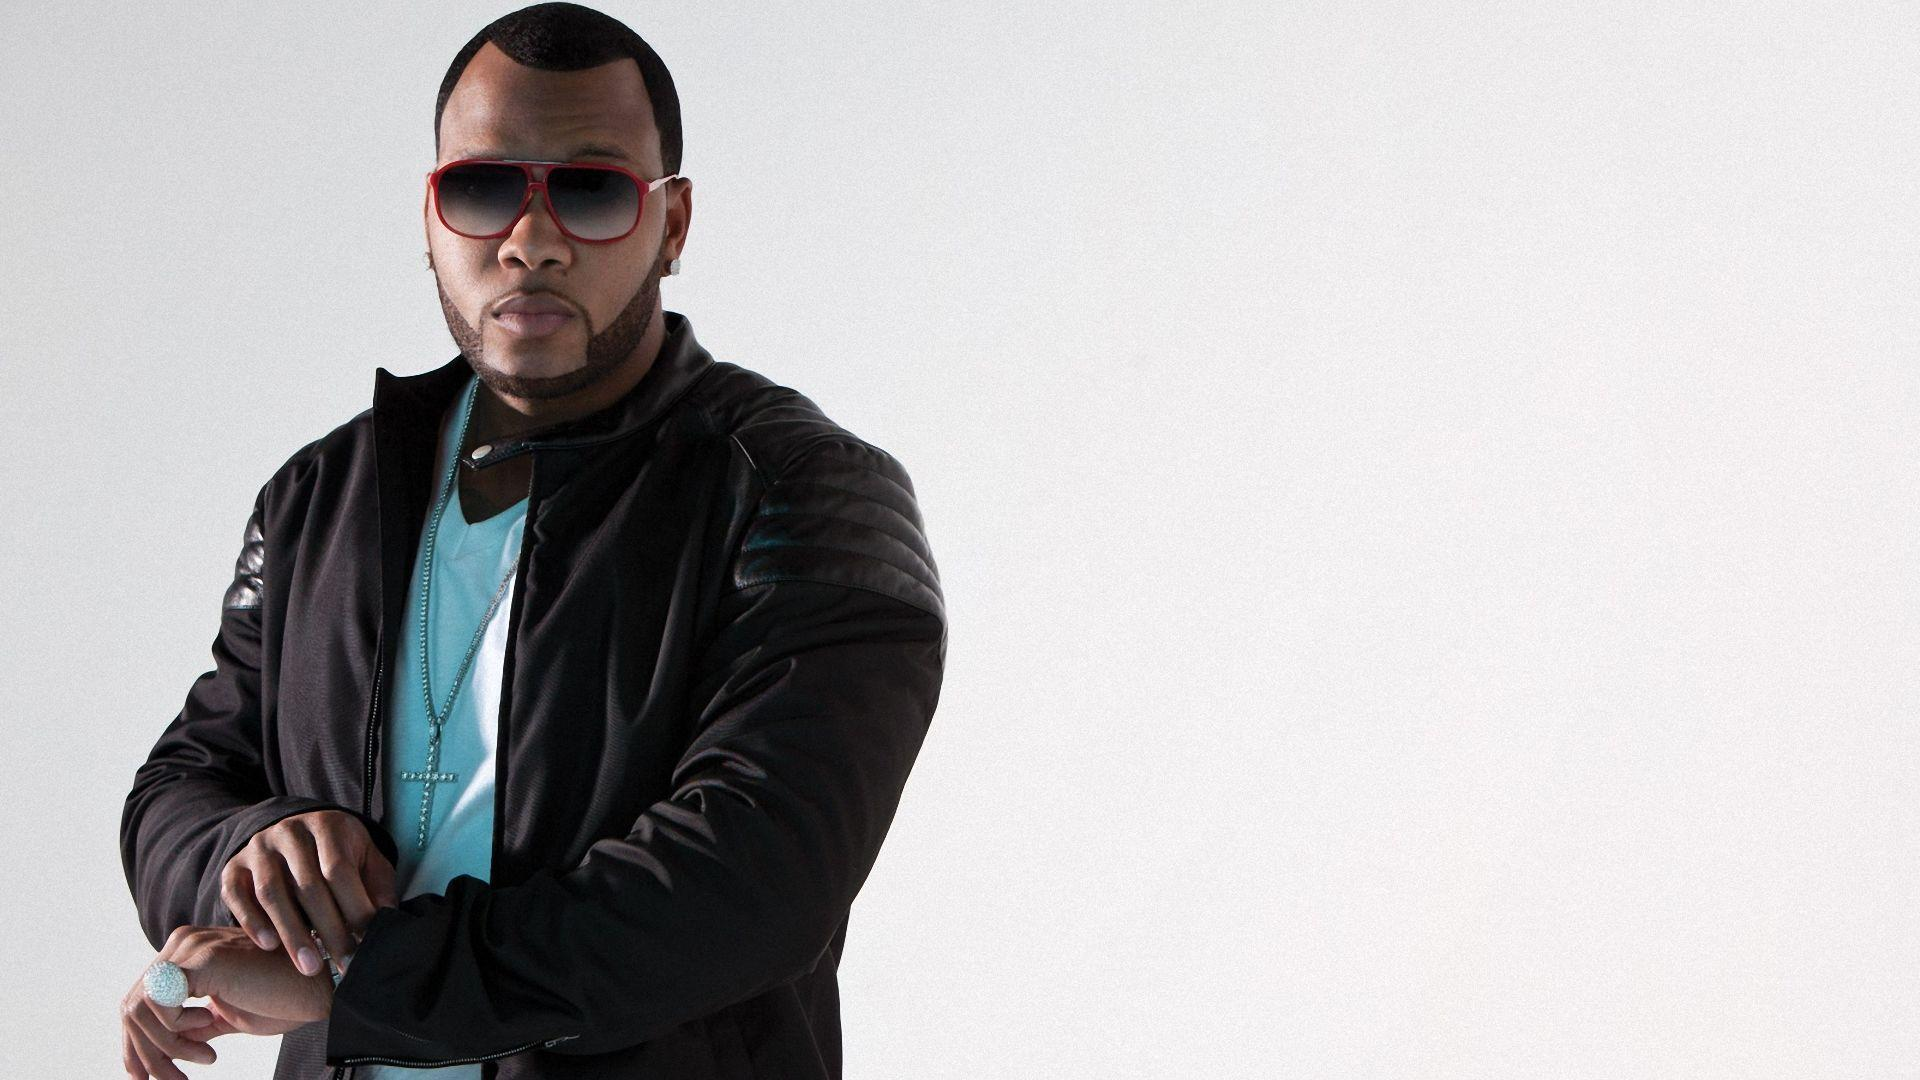 Flo Rida Wallpaper Wallpapers High Quality | Download Free